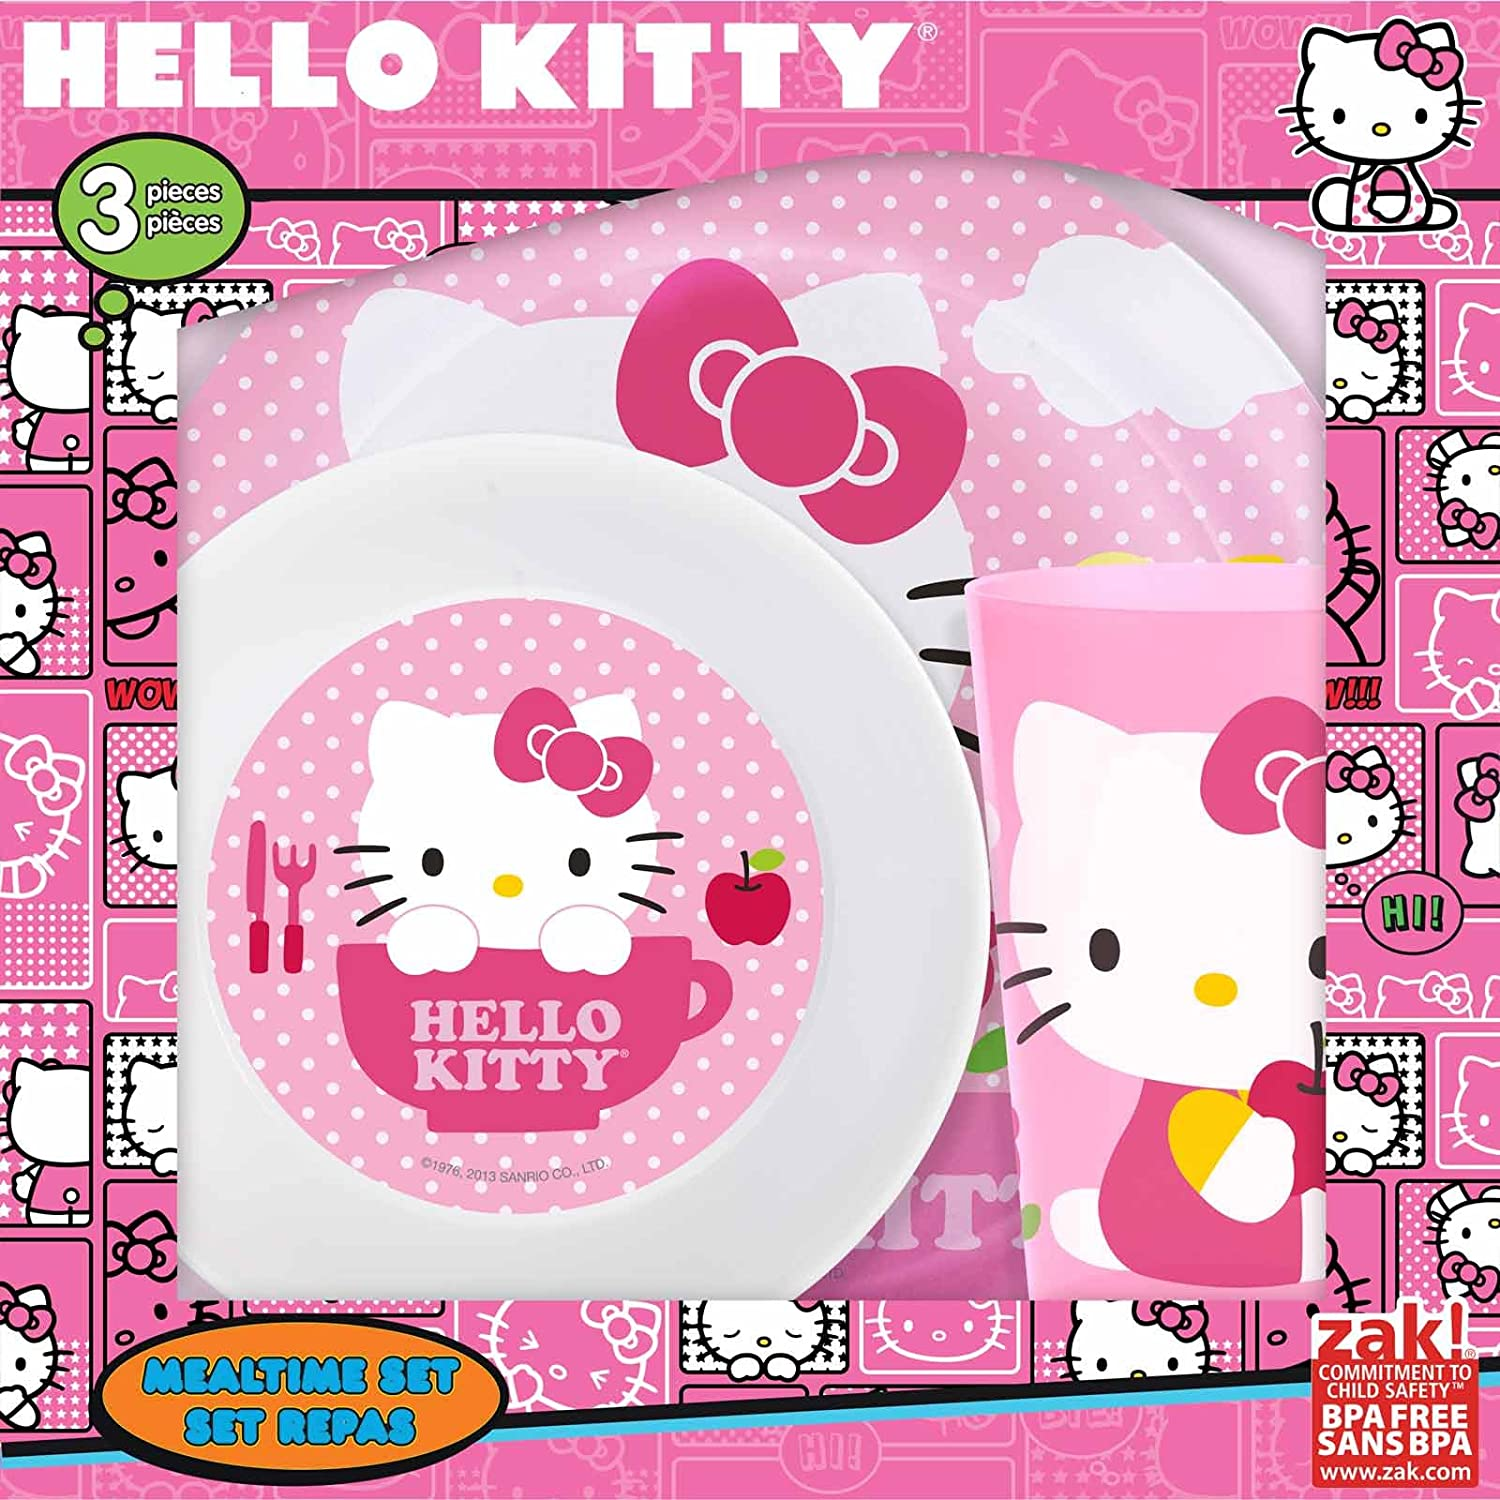 Hello Kitty Kids Mealtime Set 3 Pieces by Hello Kitty   B00G7RB04A